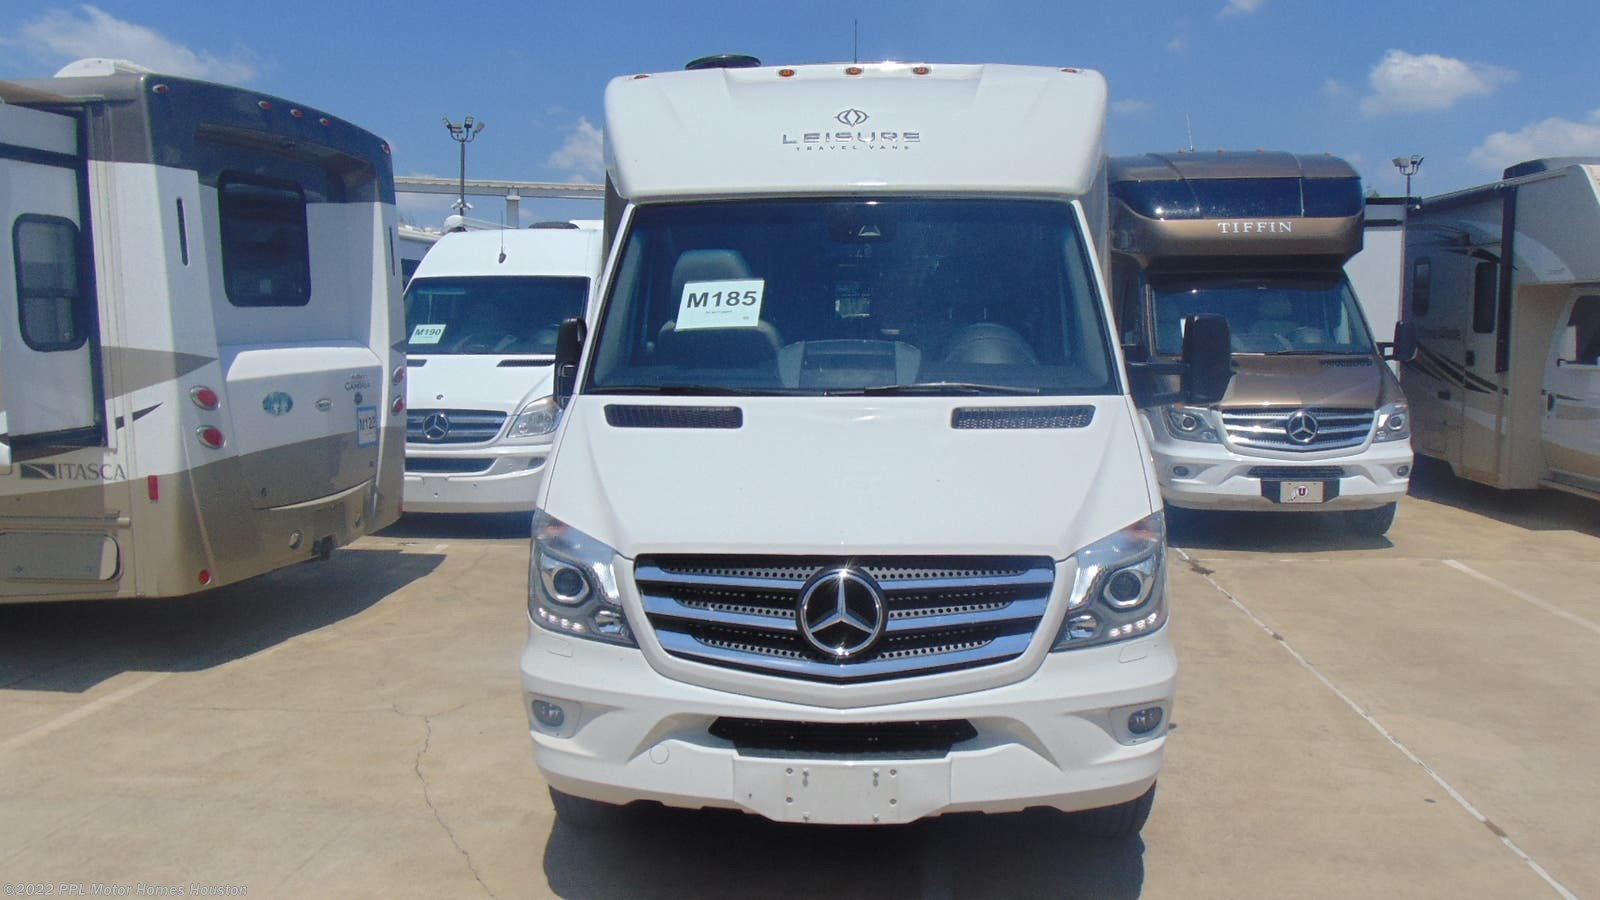 Lp Gas Cooktops For Rv On Sale Now Ppl Motor Homes >> 2017 Leisure Travel Rv Unity U24tb For Sale In Houston Tx 77074 M185